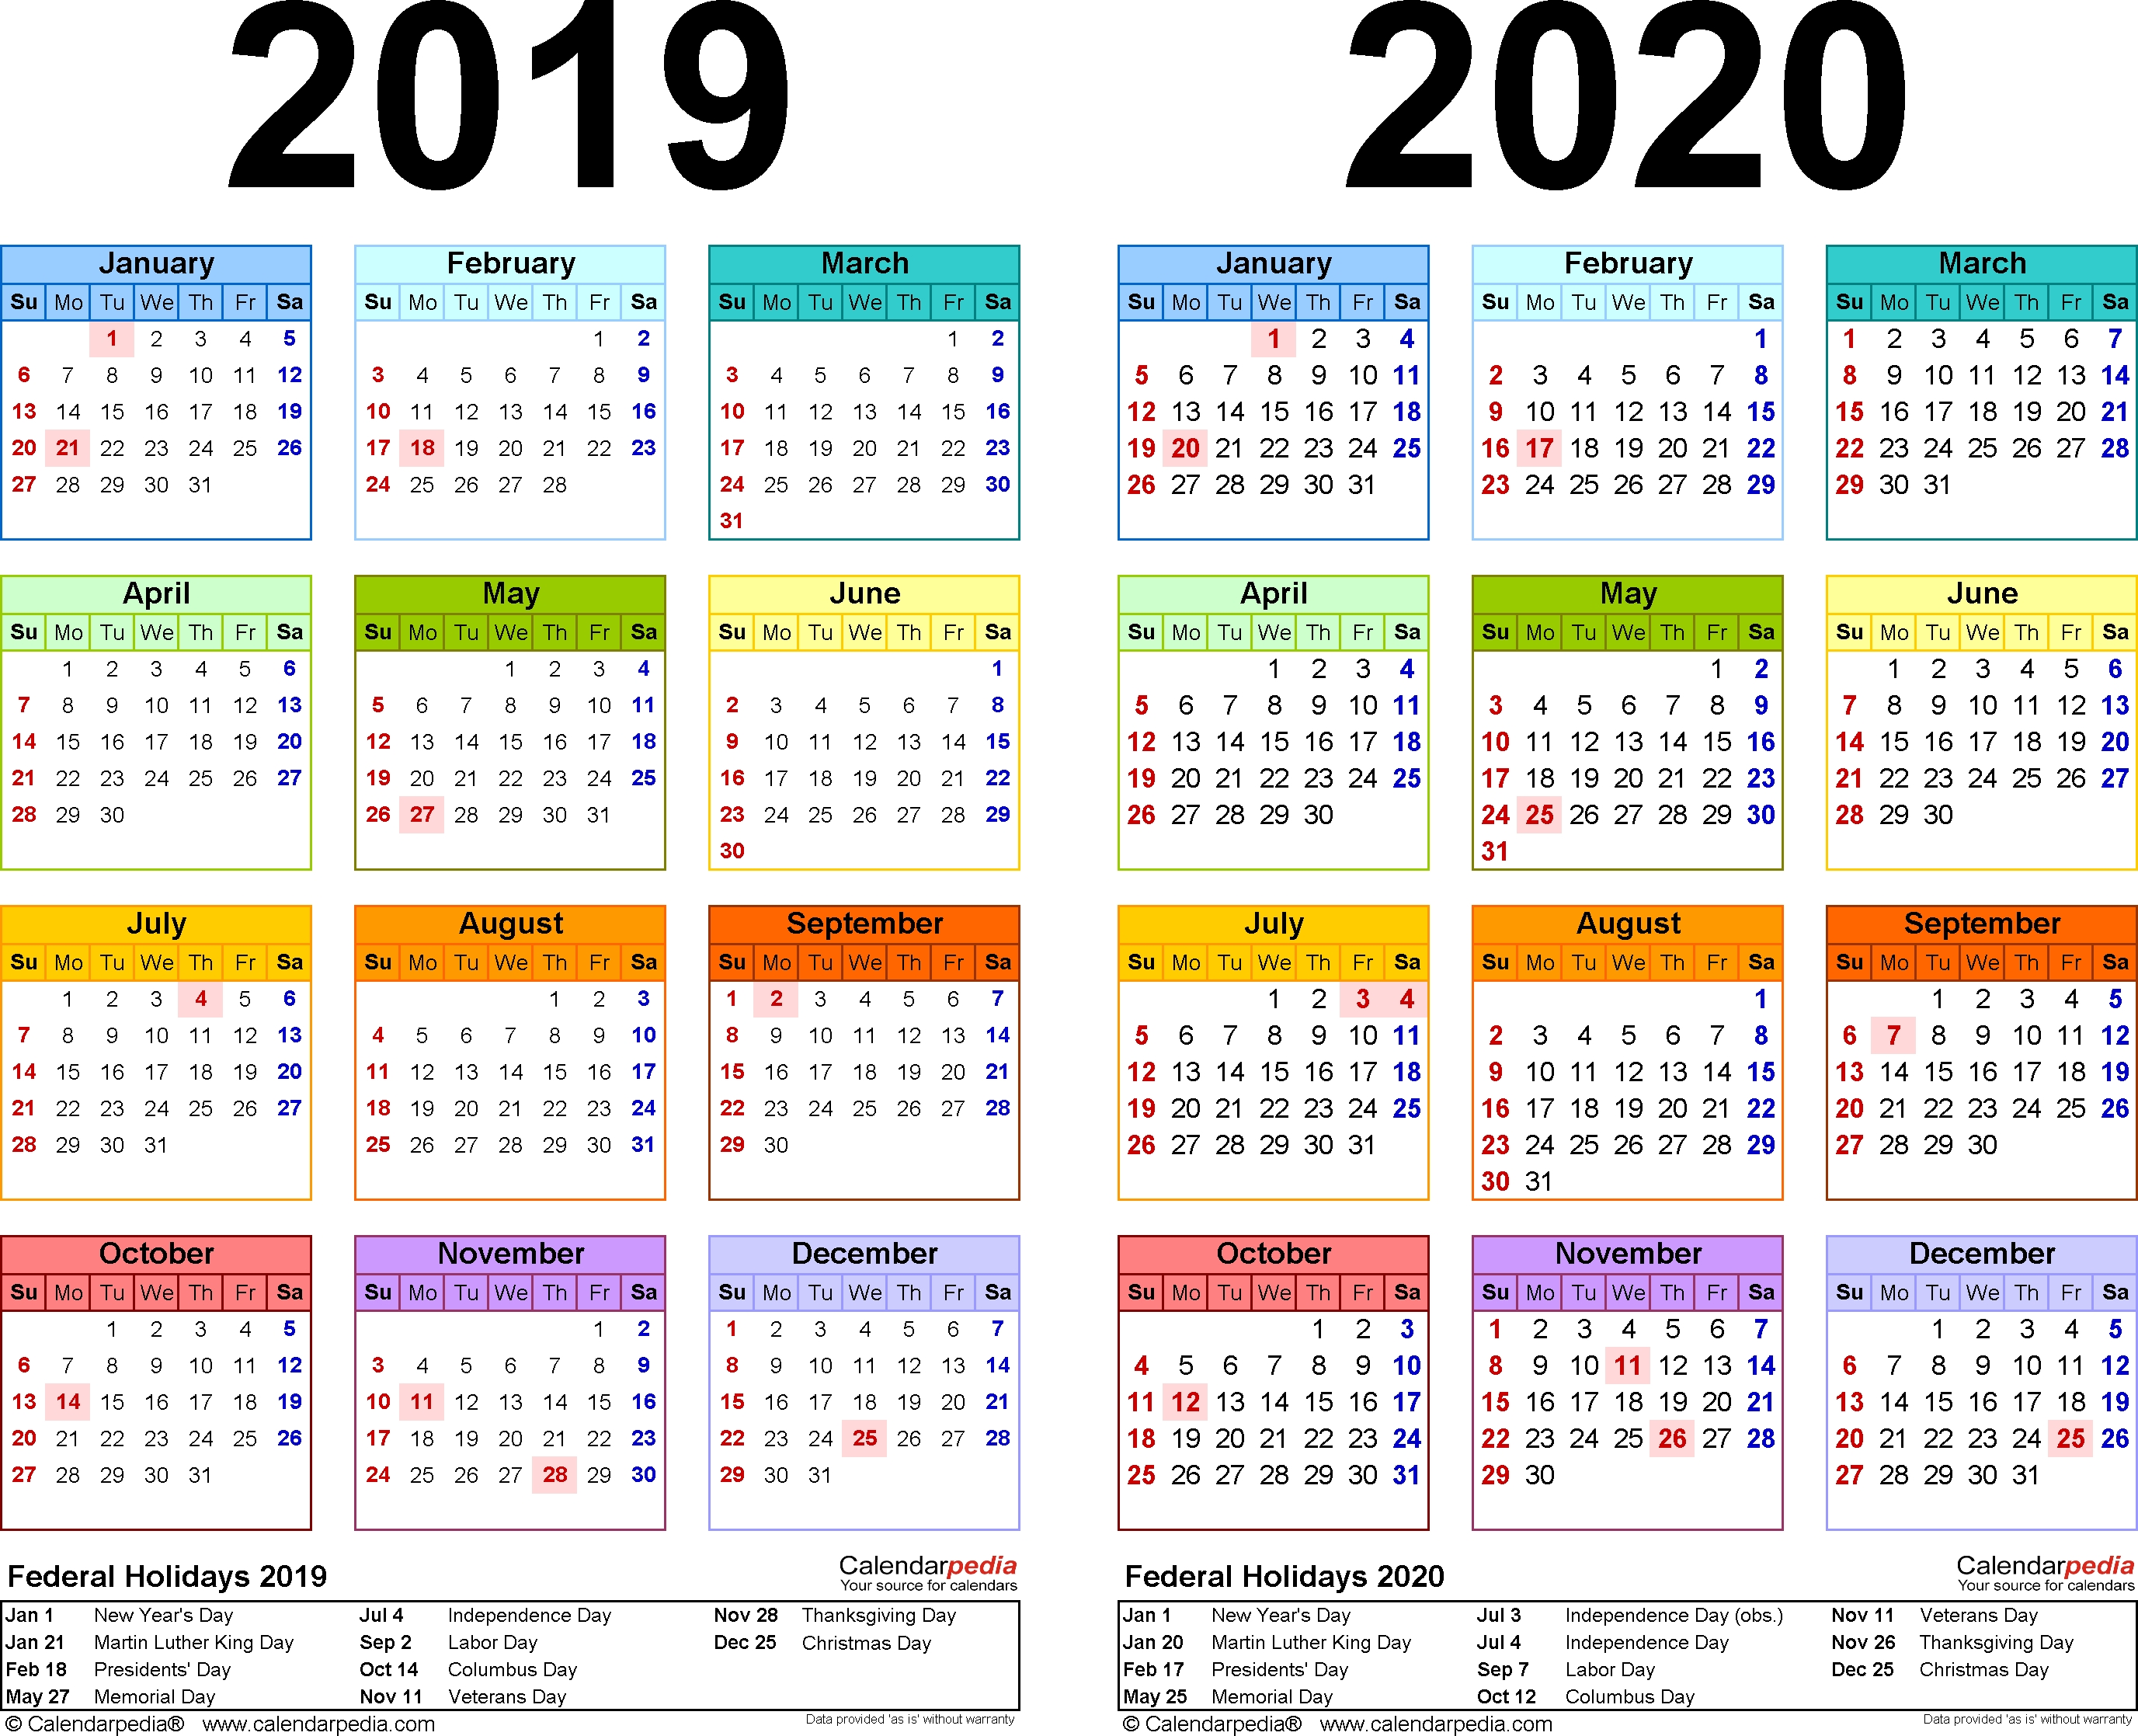 2019 2020 School Year Calendar With Holiday Us - Google-2020 Calenderwa School Holidays Printable